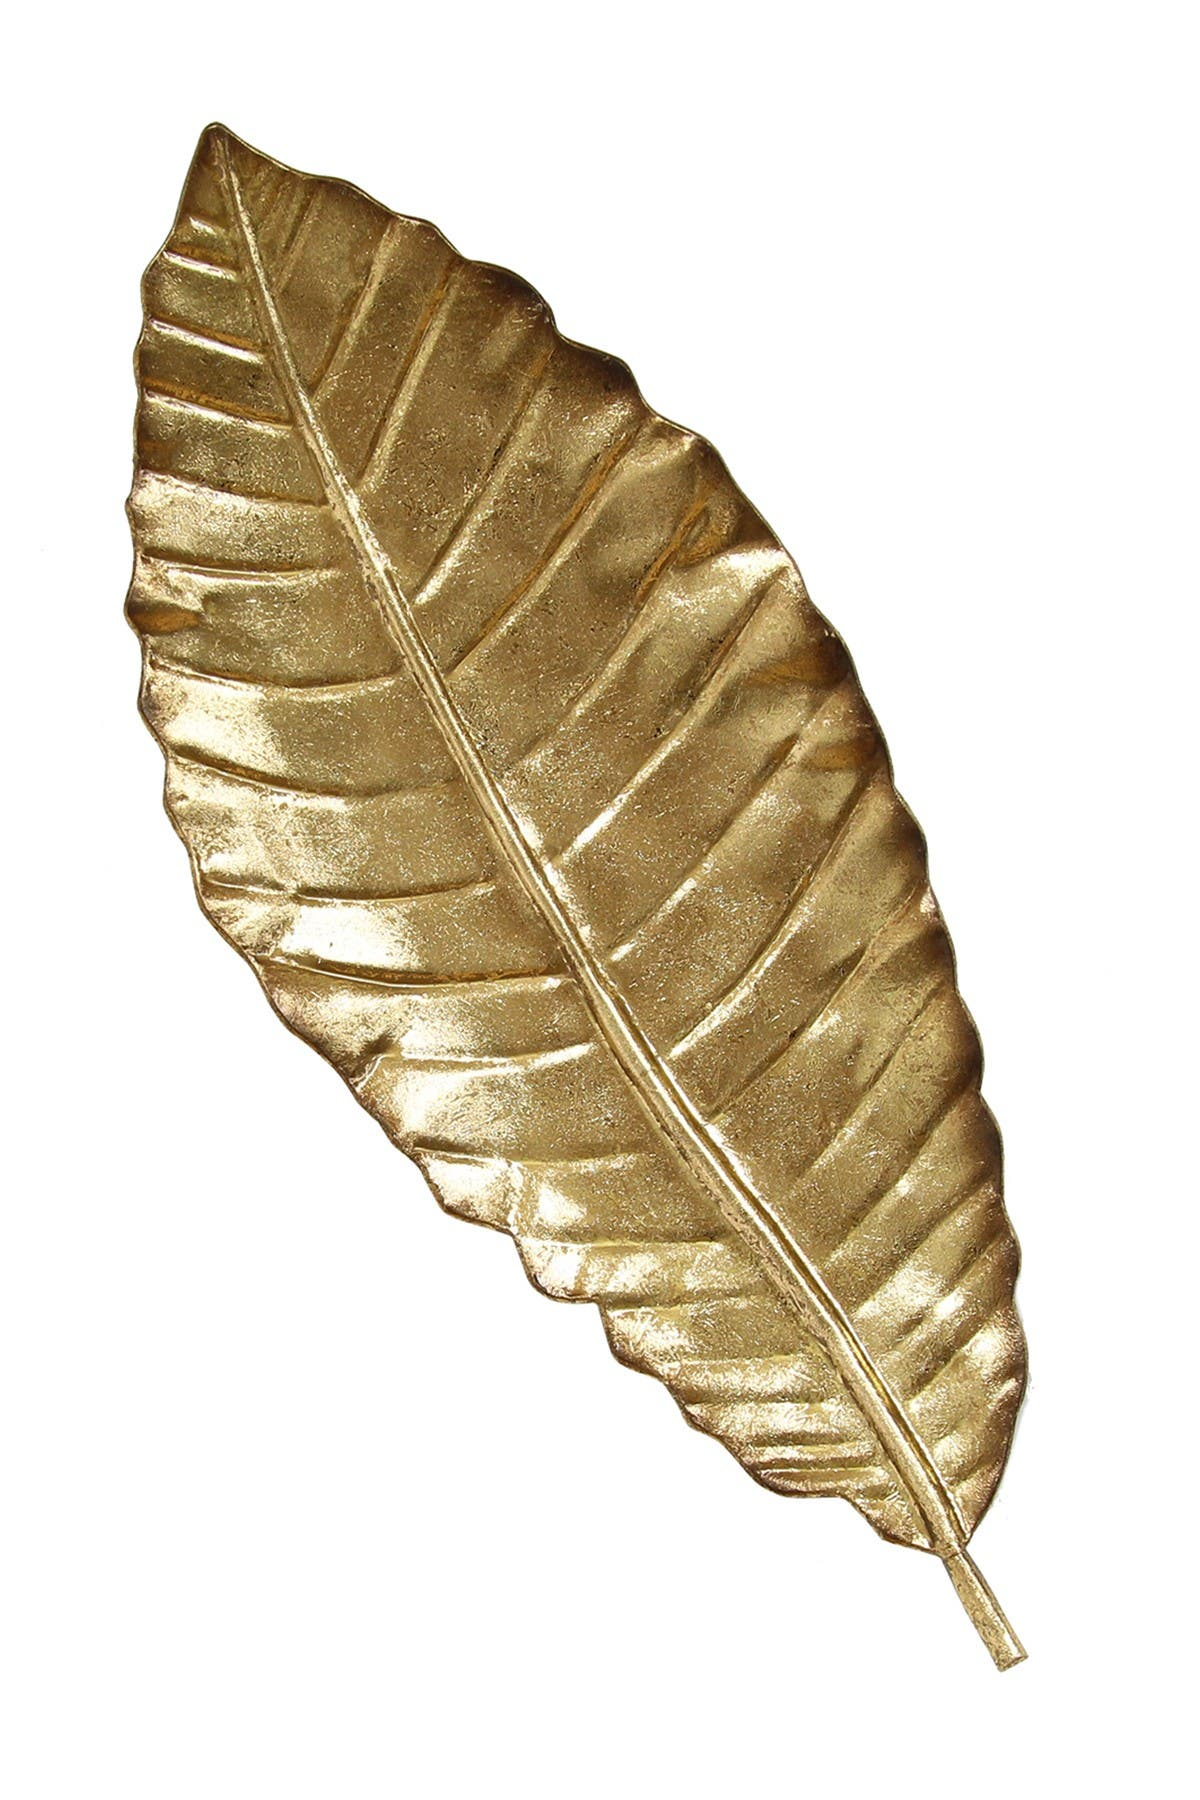 Stratton Home Gold Elegant Leaf Wall Decor at Nordstrom Rack